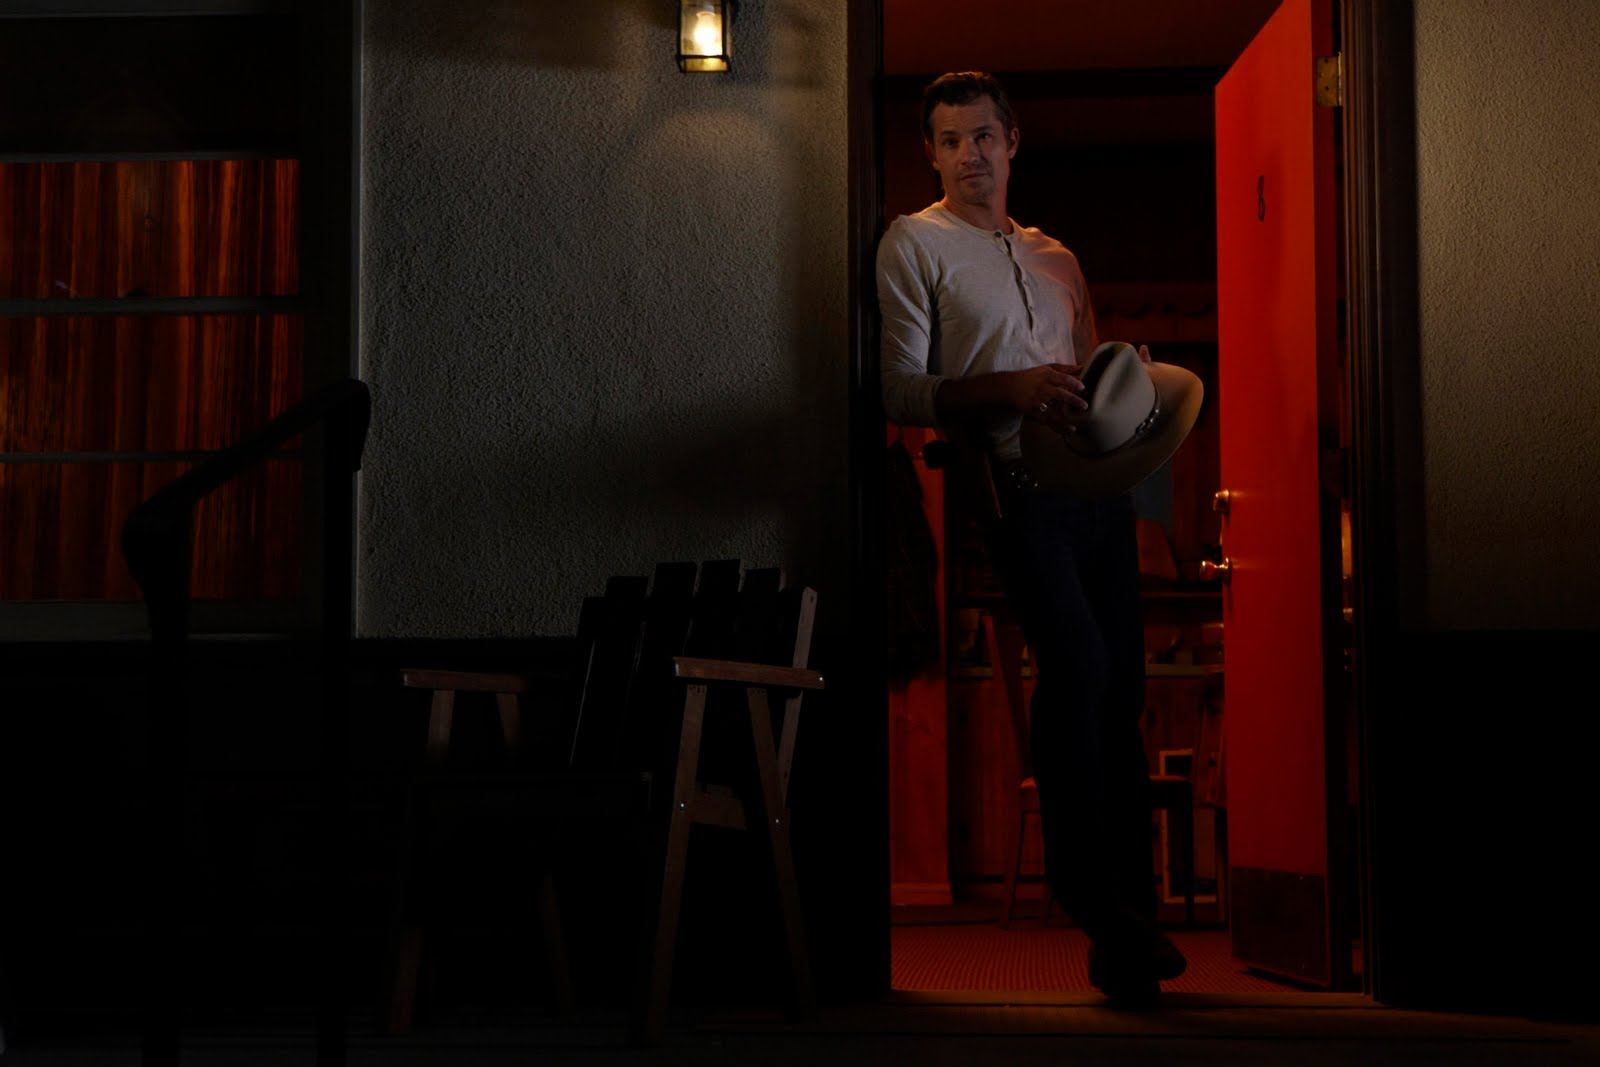 raylan hot doorway